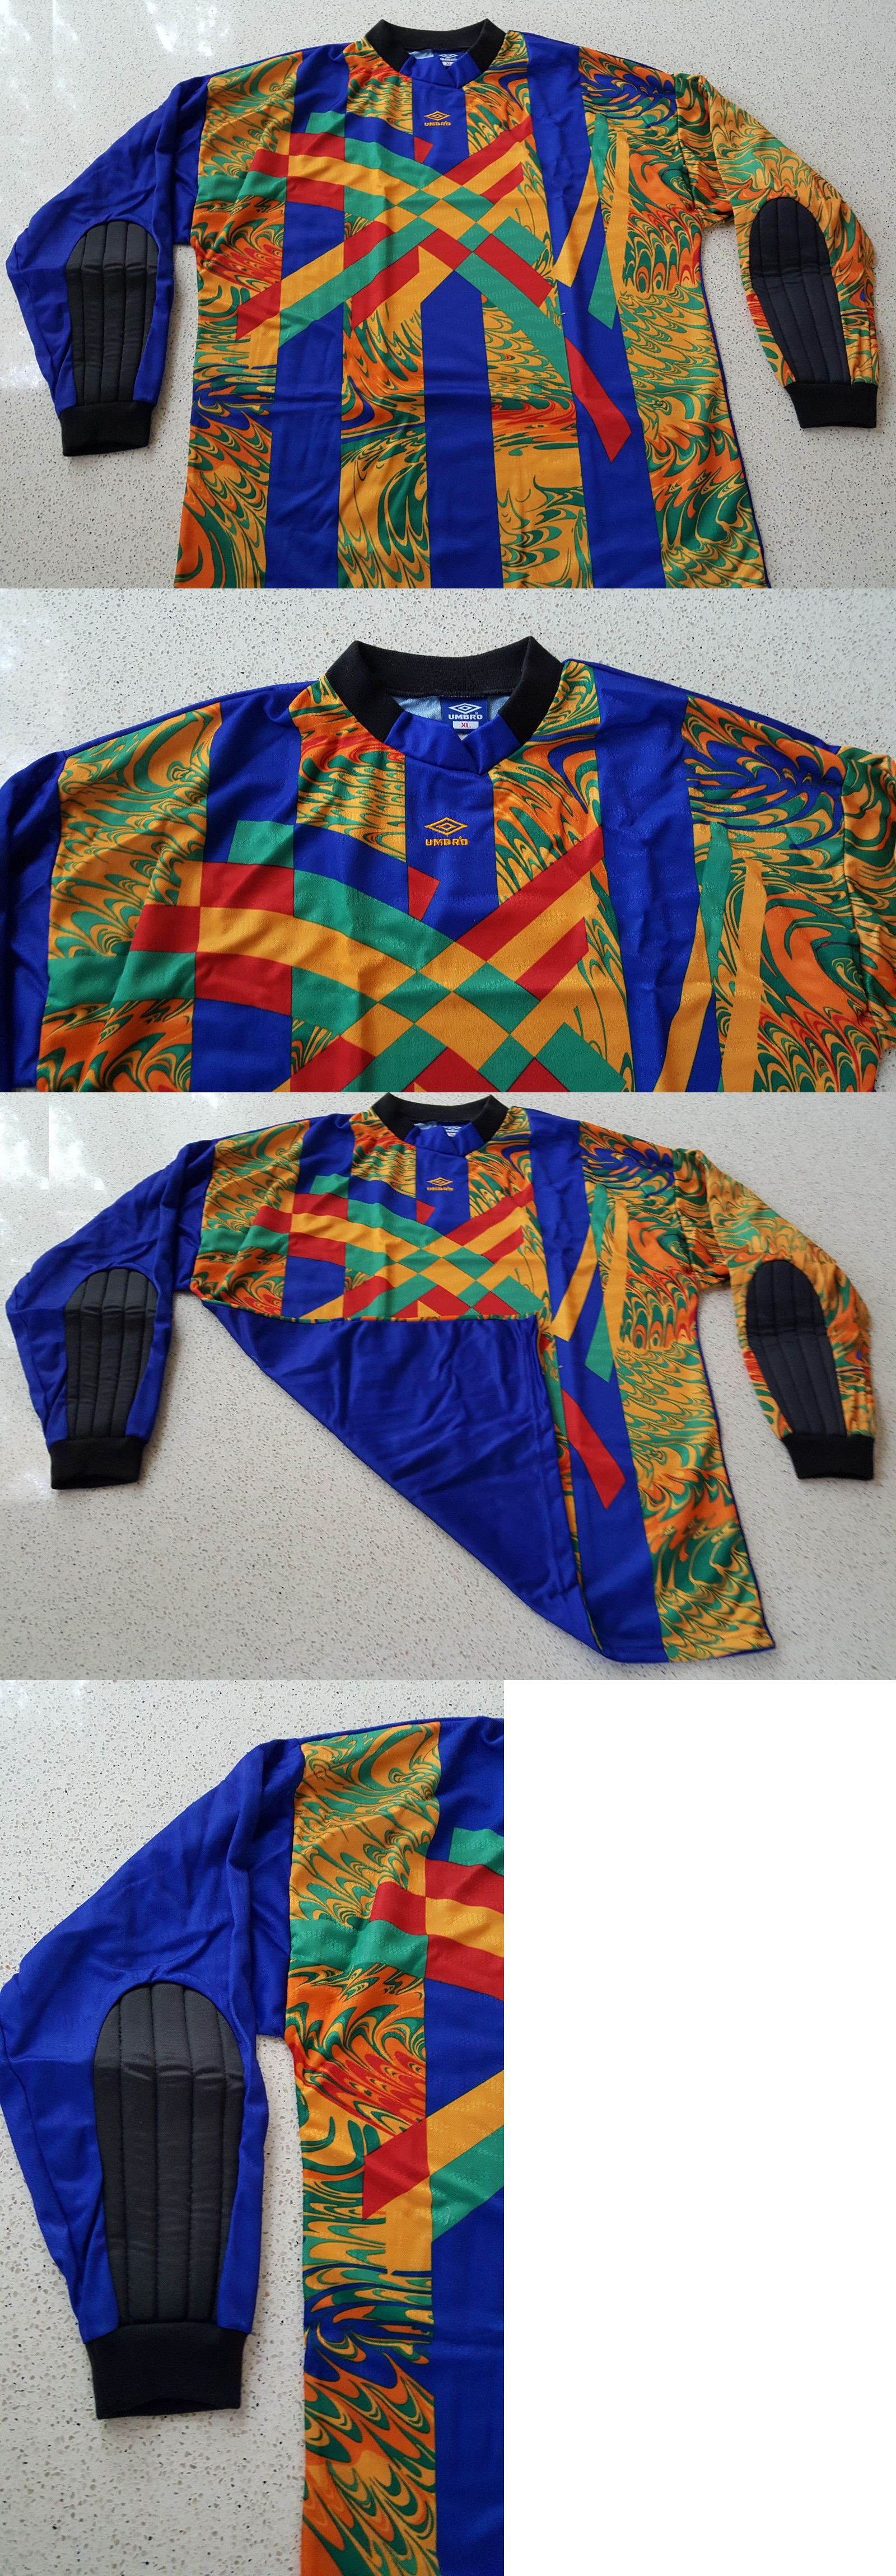 Clothing 33485  Umbro Goalkeeper Jersey Retro Vintage 1990S ~ Padded ~ Adult  Xl -  BUY IT NOW ONLY   25 on eBay! ca17aff53